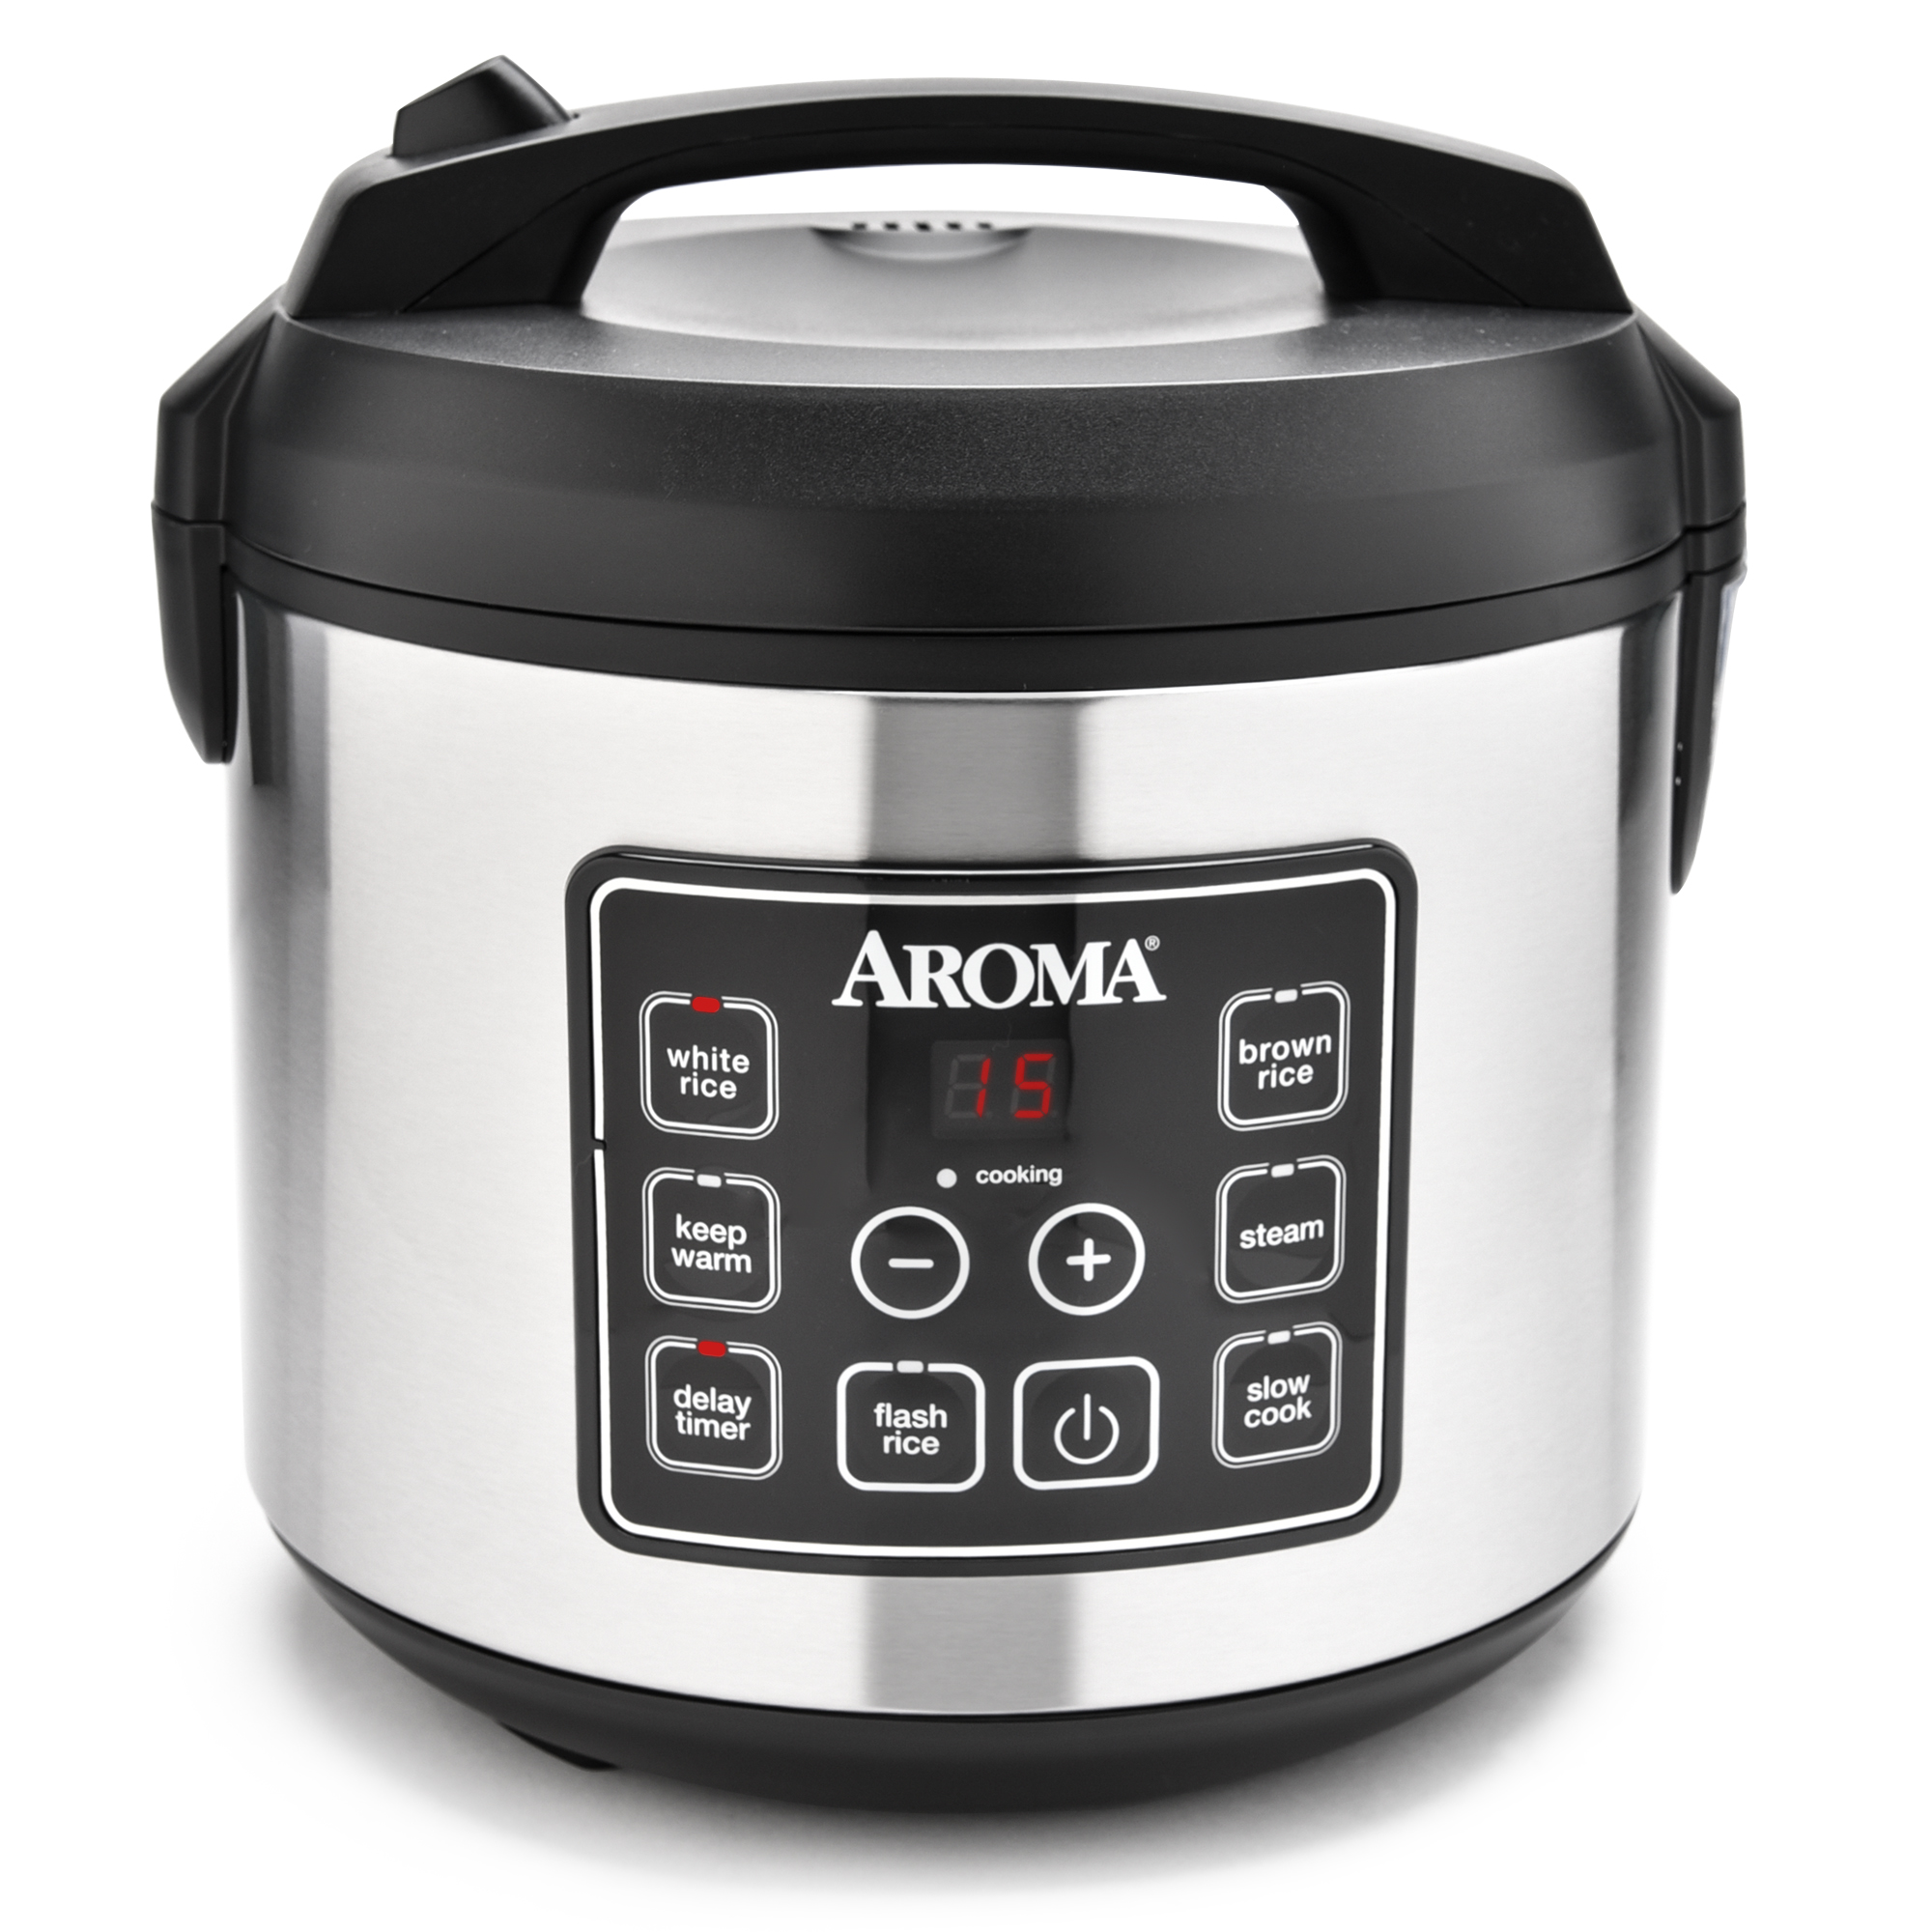 aroma 20 cup programmable rice cooker slow cooker and food steamer stainless ebay. Black Bedroom Furniture Sets. Home Design Ideas